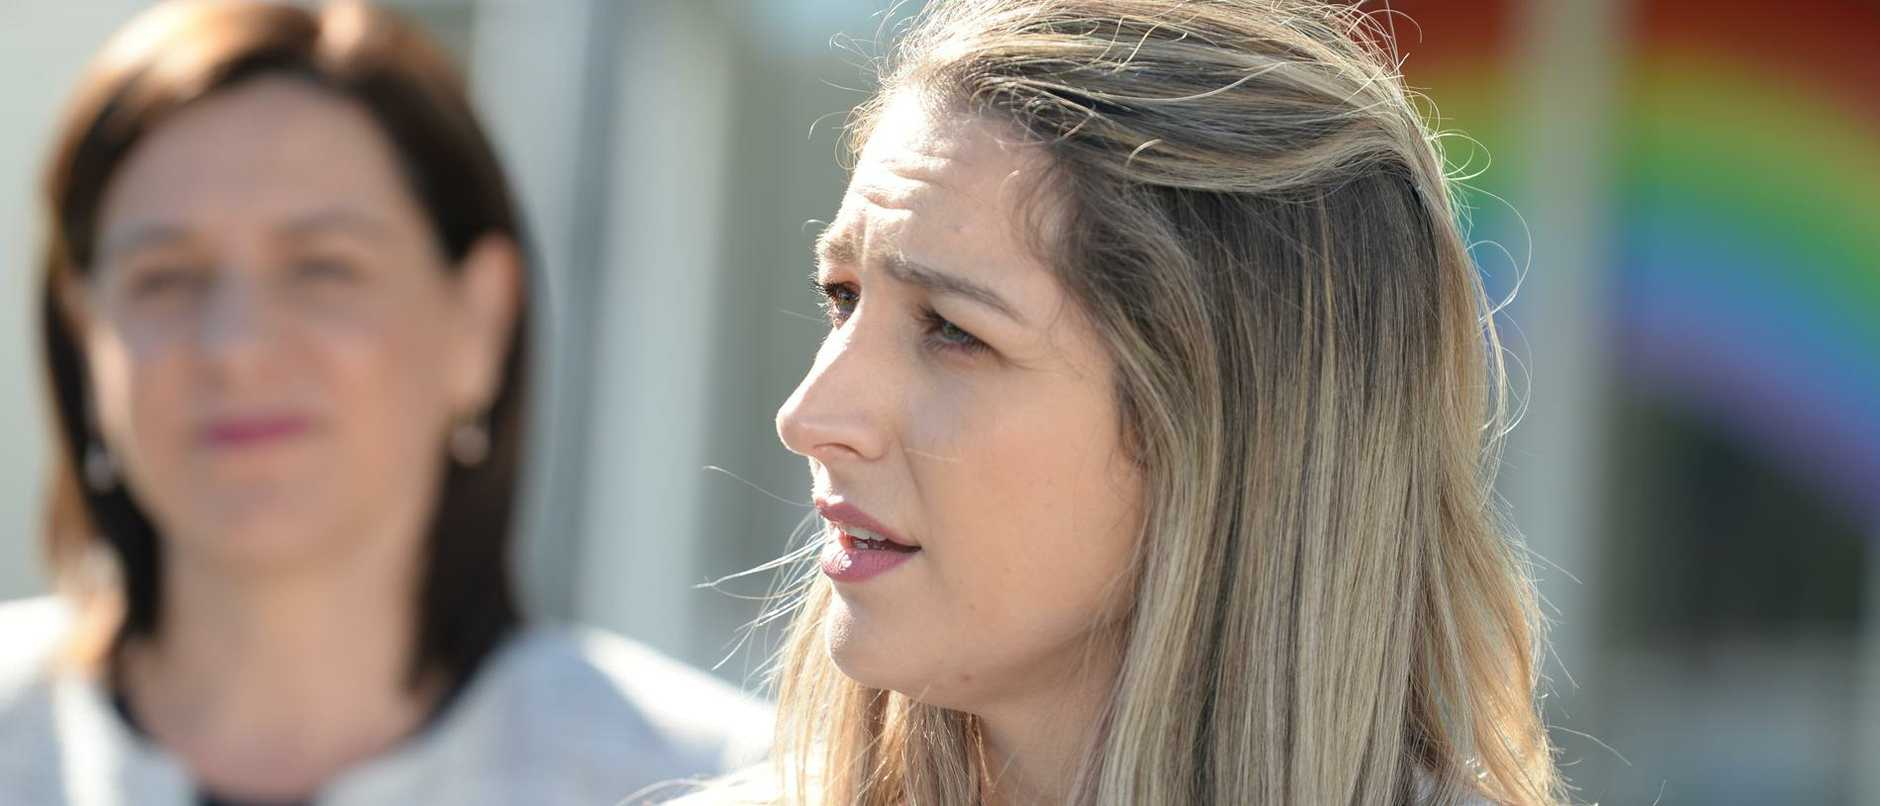 The LNP's Laura Gerber has denied Labor a second Gold Coast seat by just 310 votes, with her opponent Kaylee Campradt conceding defeat late Wednesday.